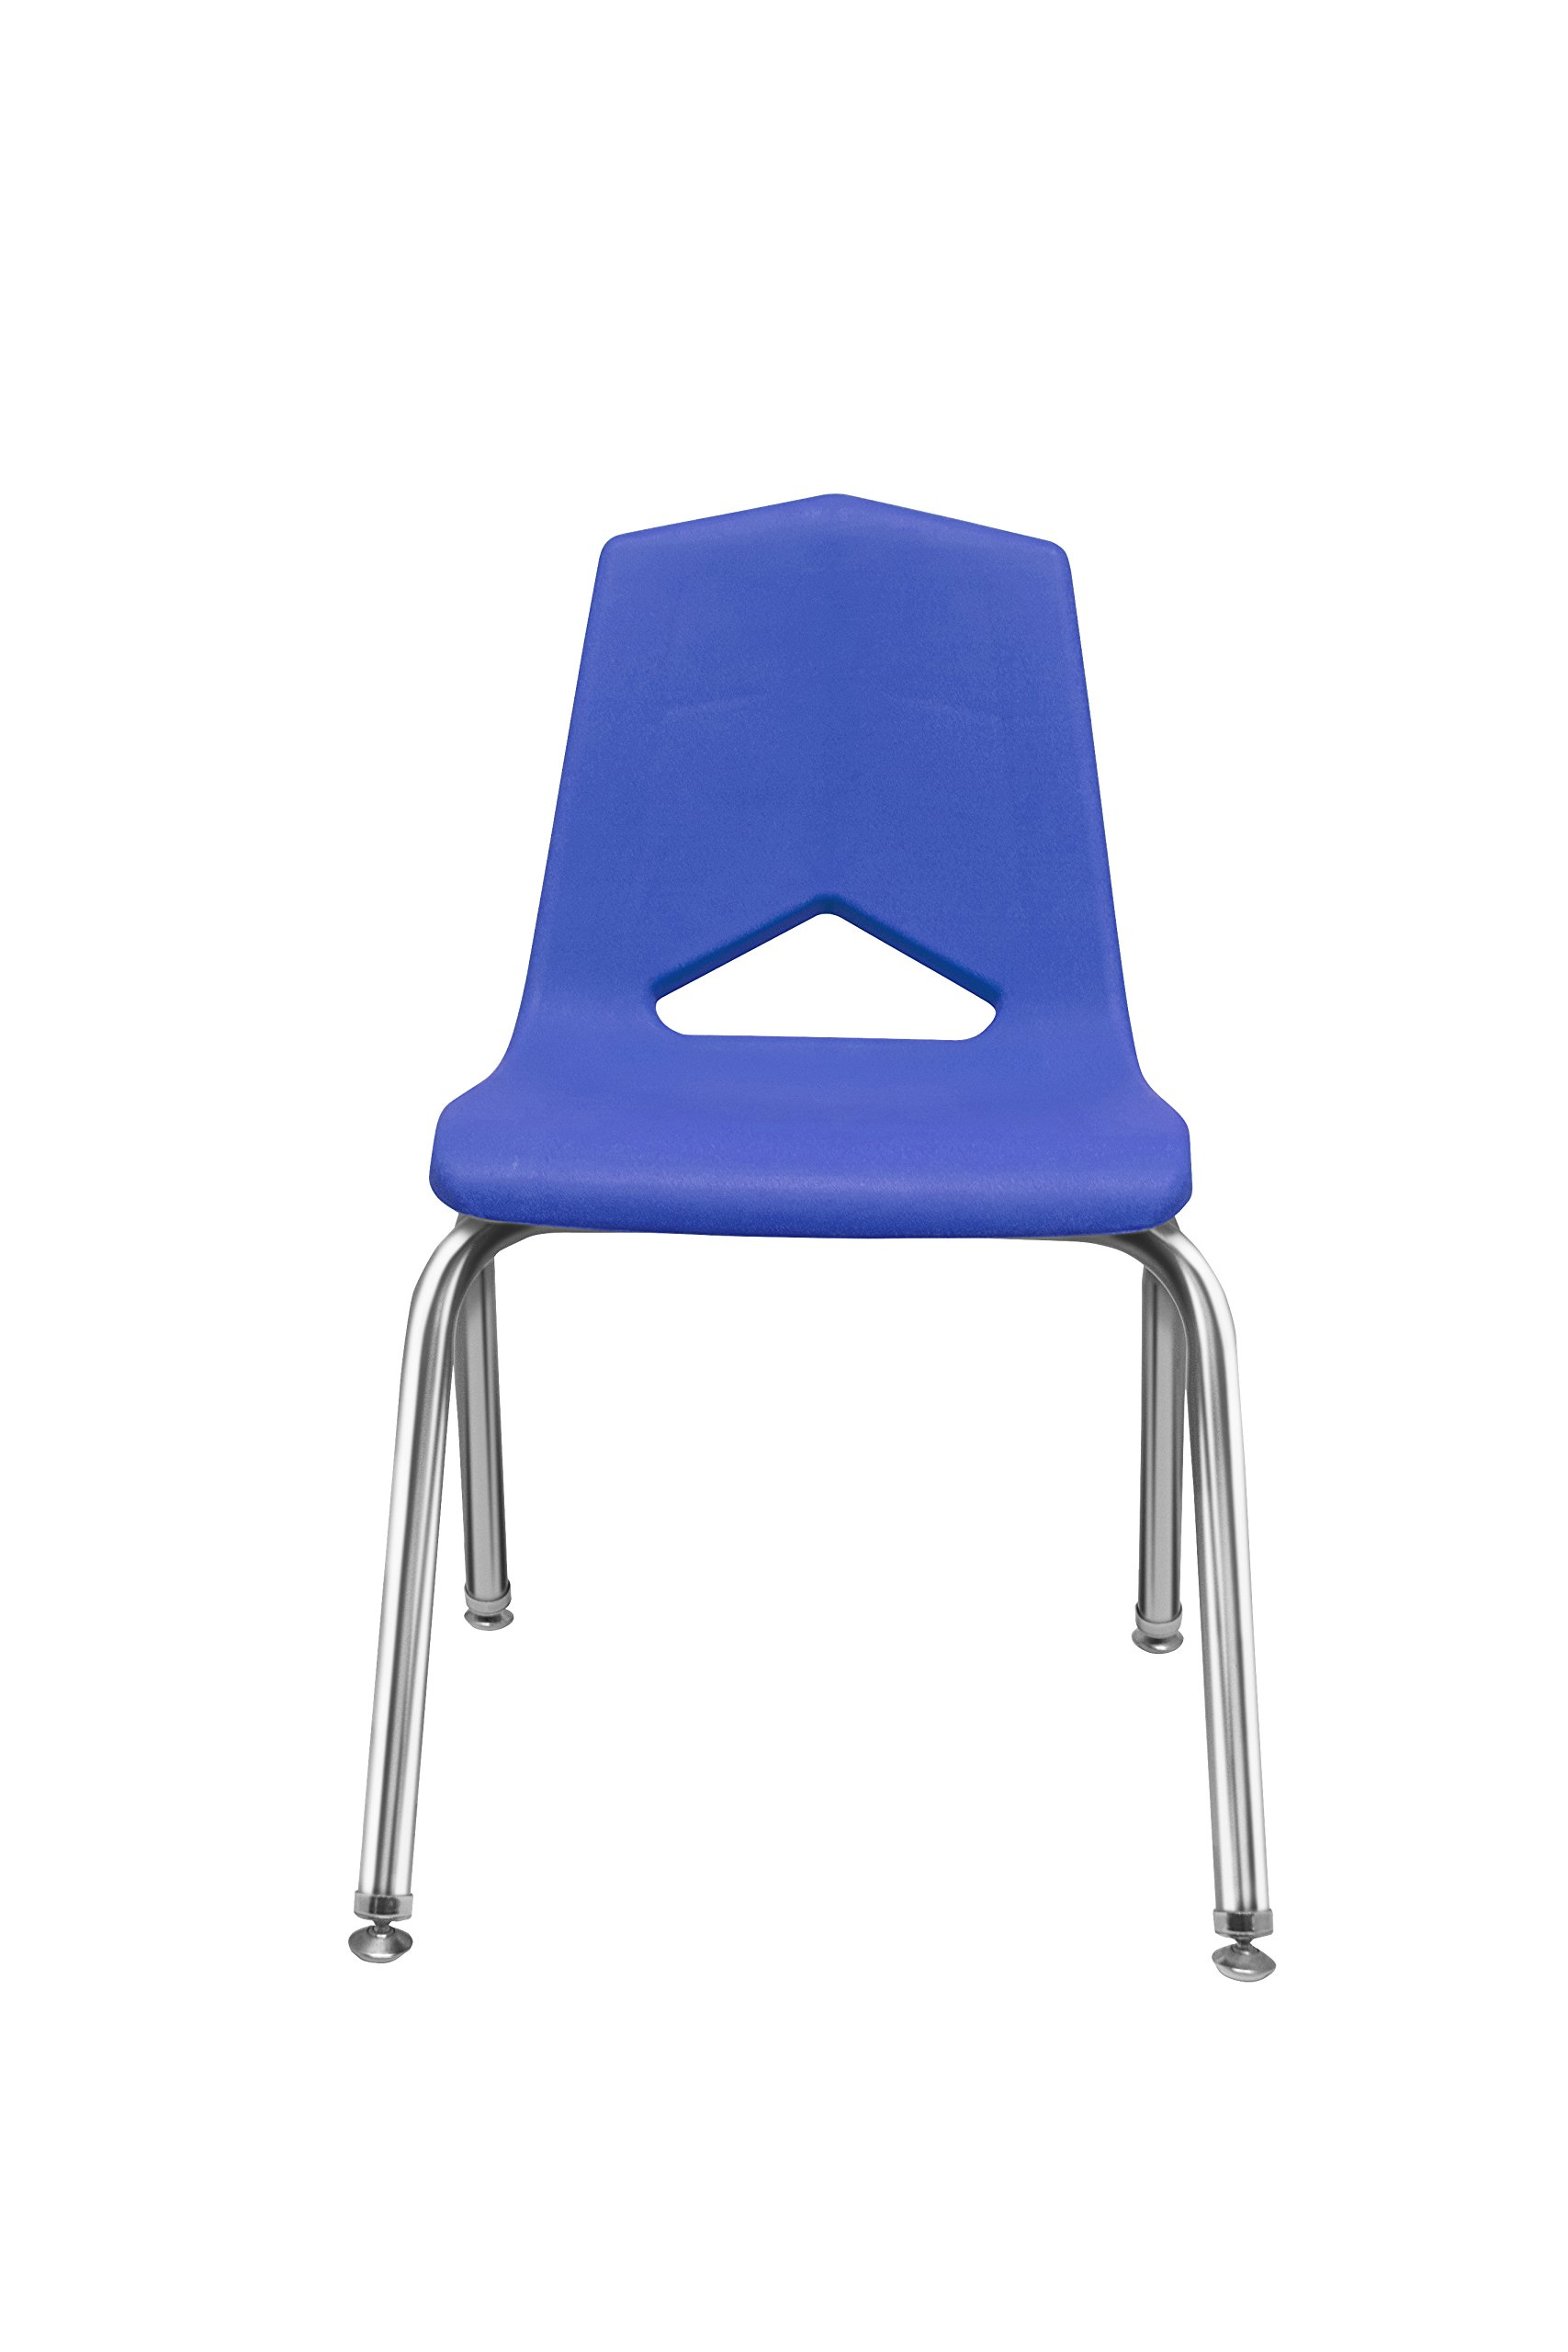 Marco Group MG1101 Series V-Back Chair, 12-Inch Seat Height, Blue/Chrome, 6 Per Carton